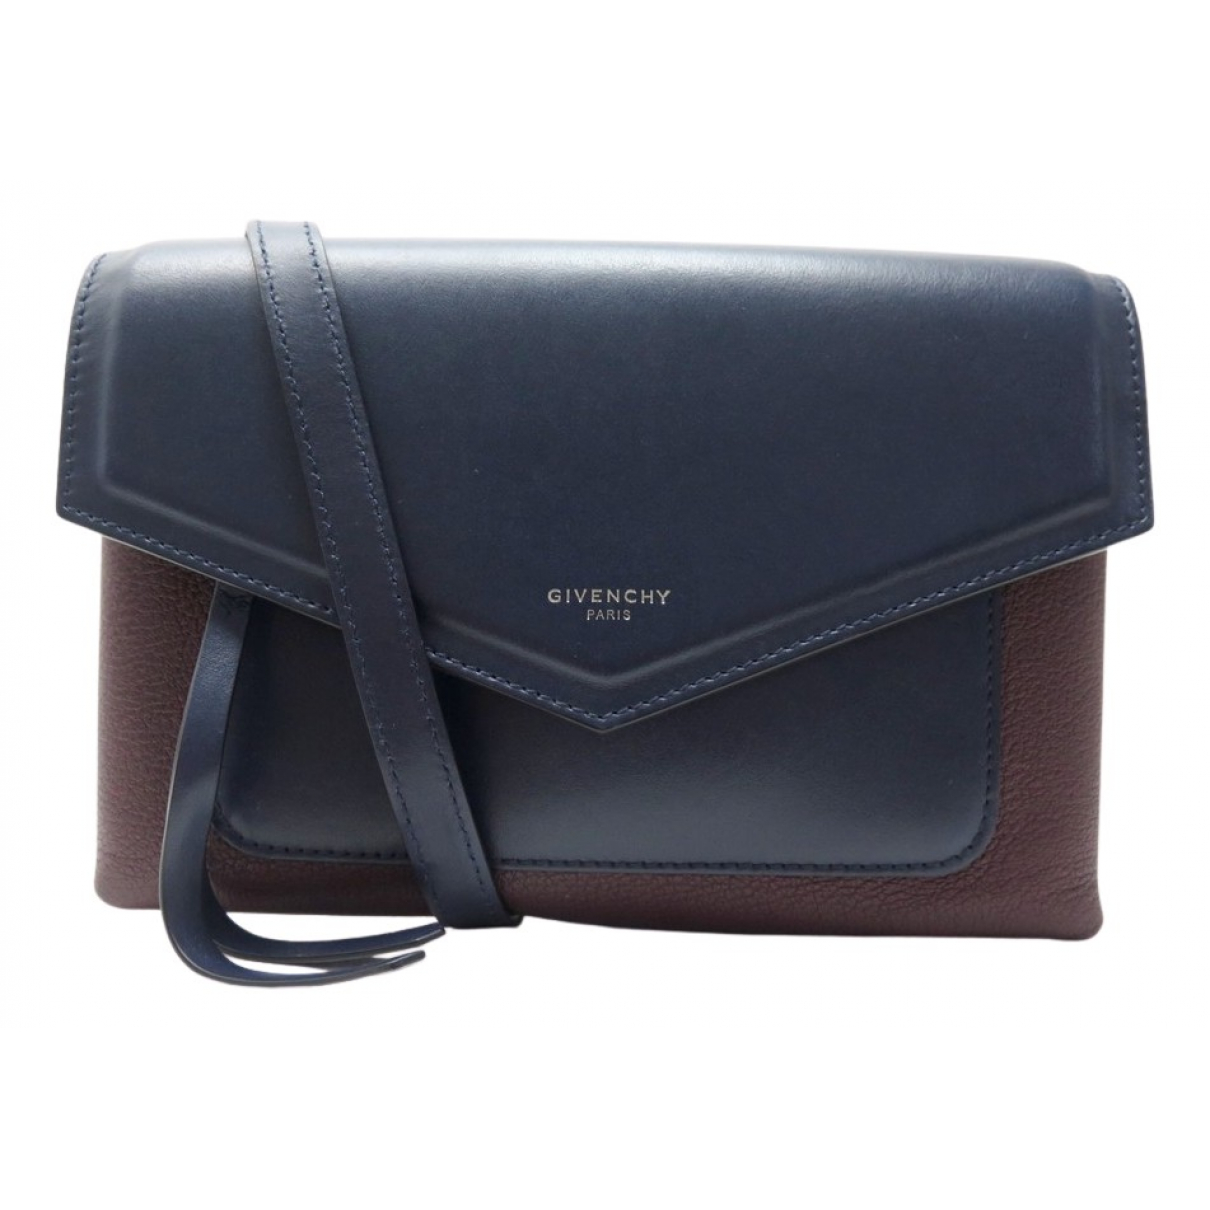 Givenchy N Navy Leather handbag for Women N